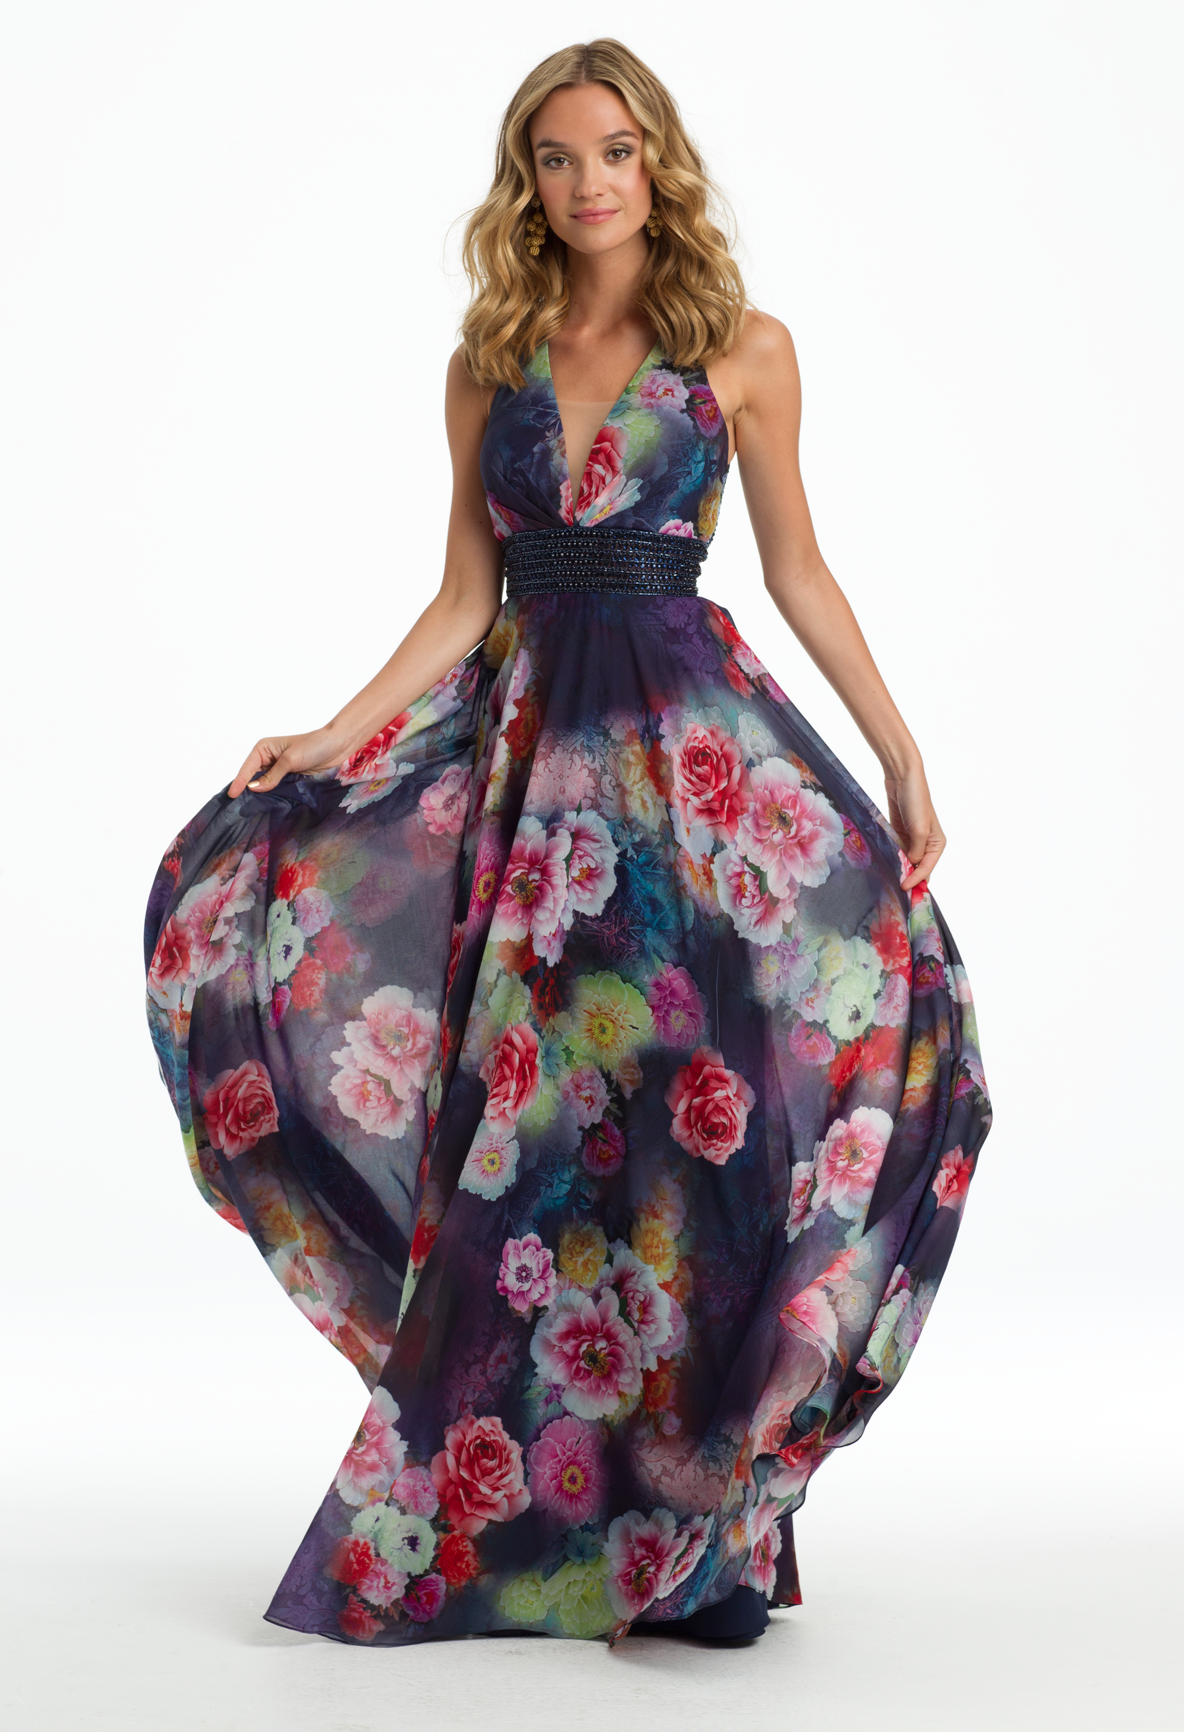 Go for a bohemian look with this breezy evening gown the plunging